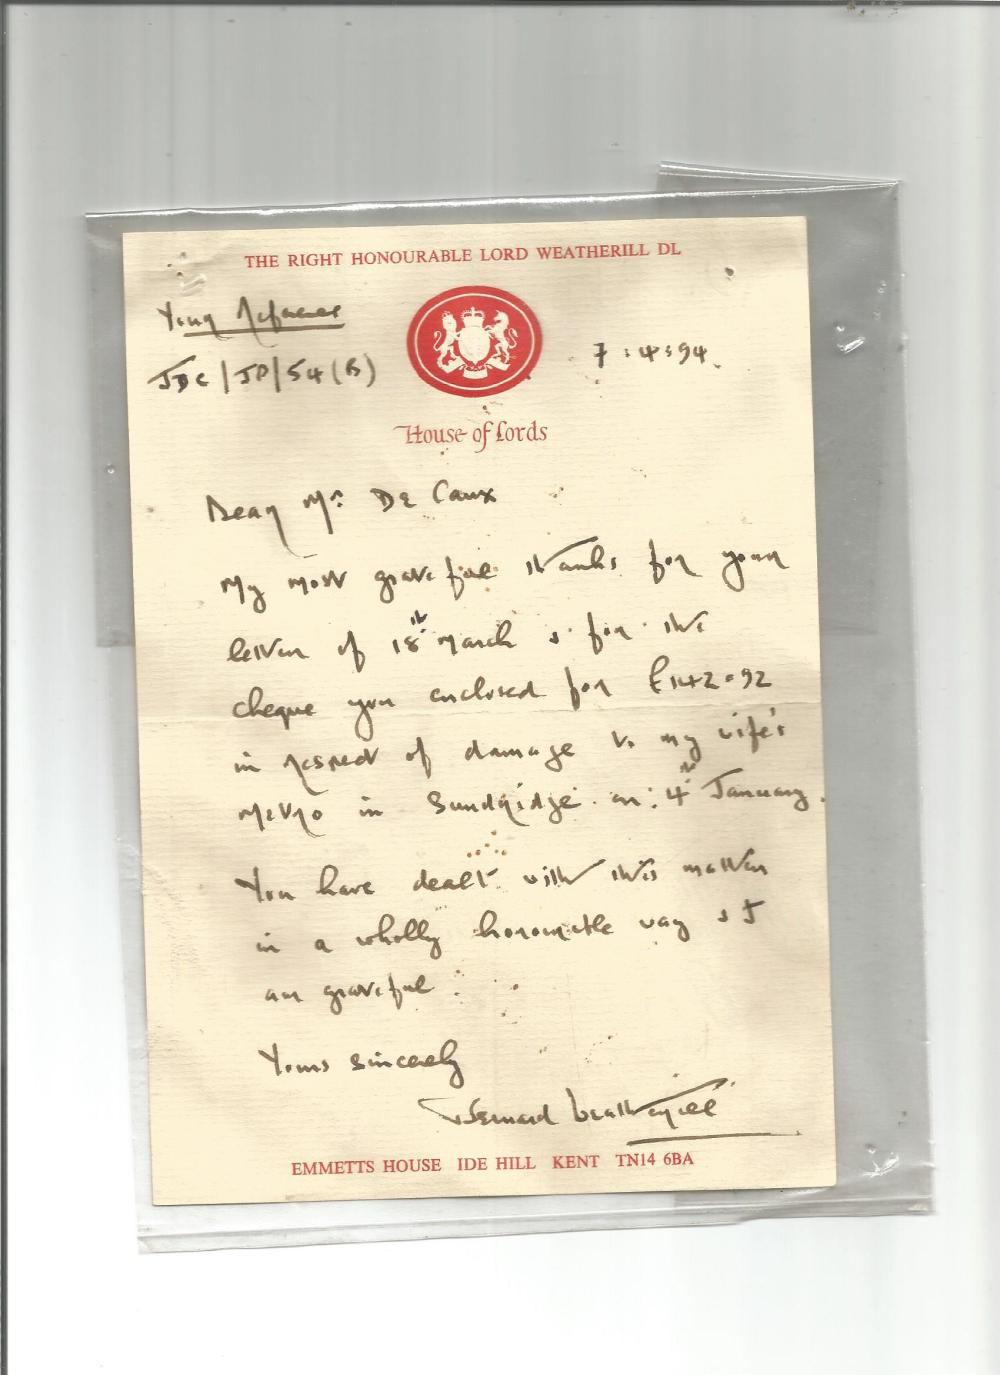 Bernard Weatherill handwritten letter 1994 on House of Lords notepaper, giving thanks for receipt of